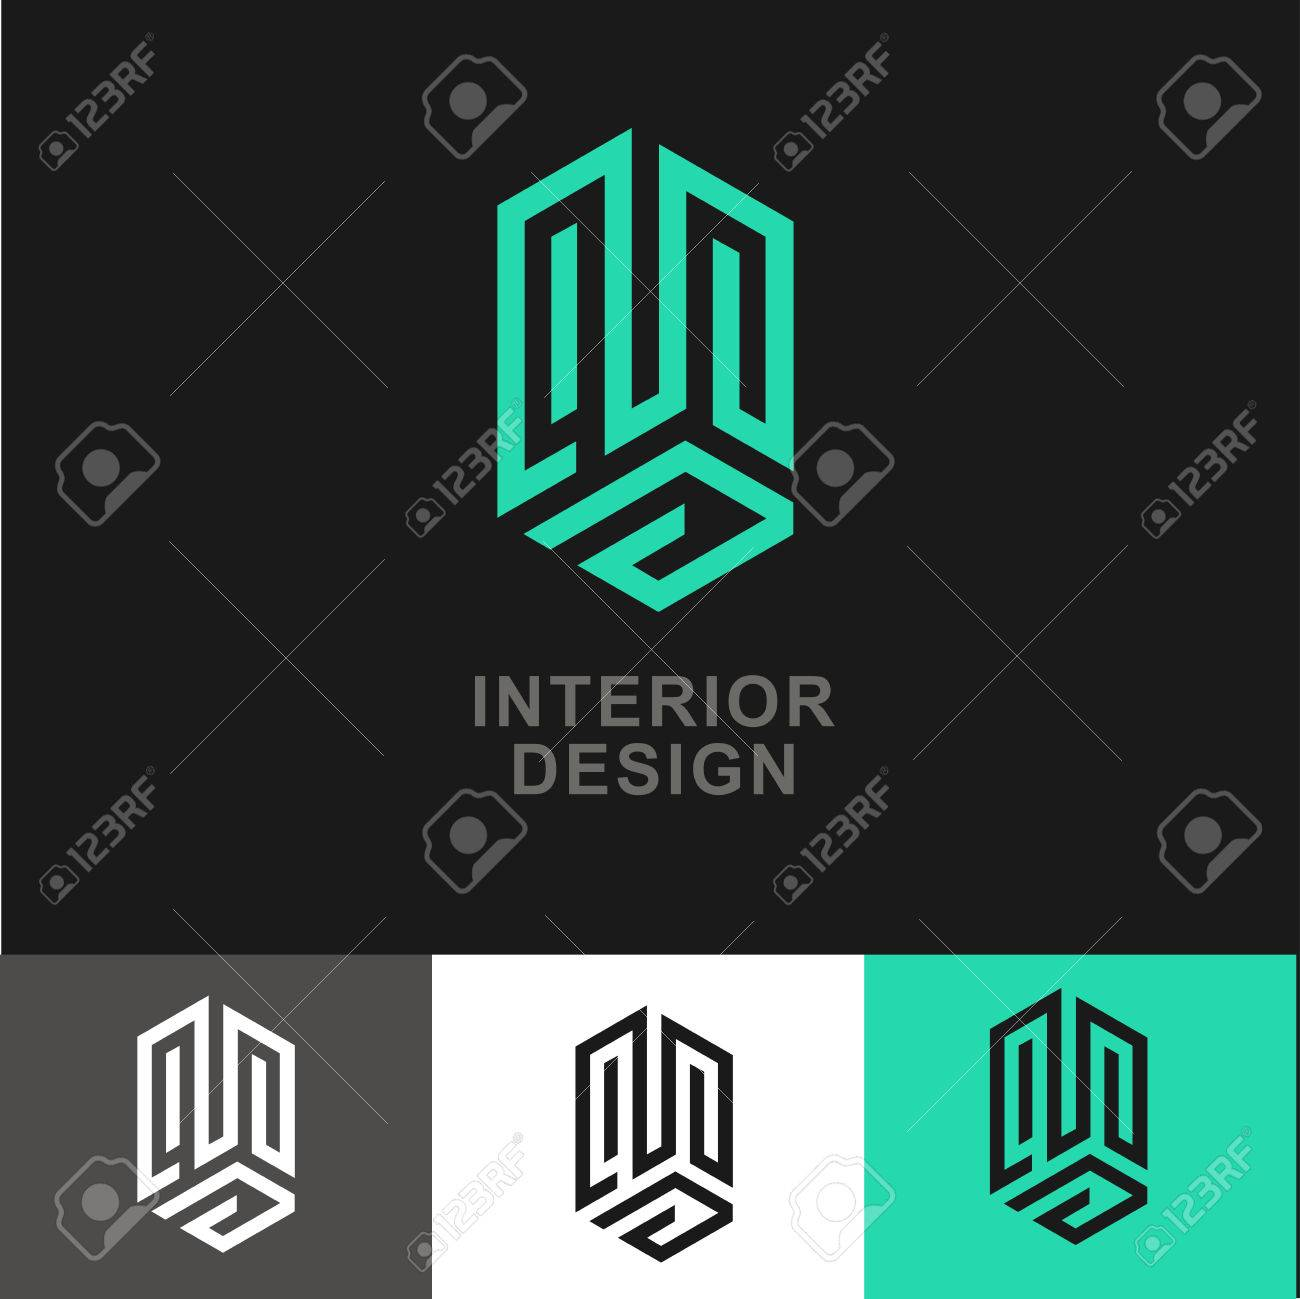 Business Icon - Vector Design-Vorlage. Abstrakt Emblem Für Den ...